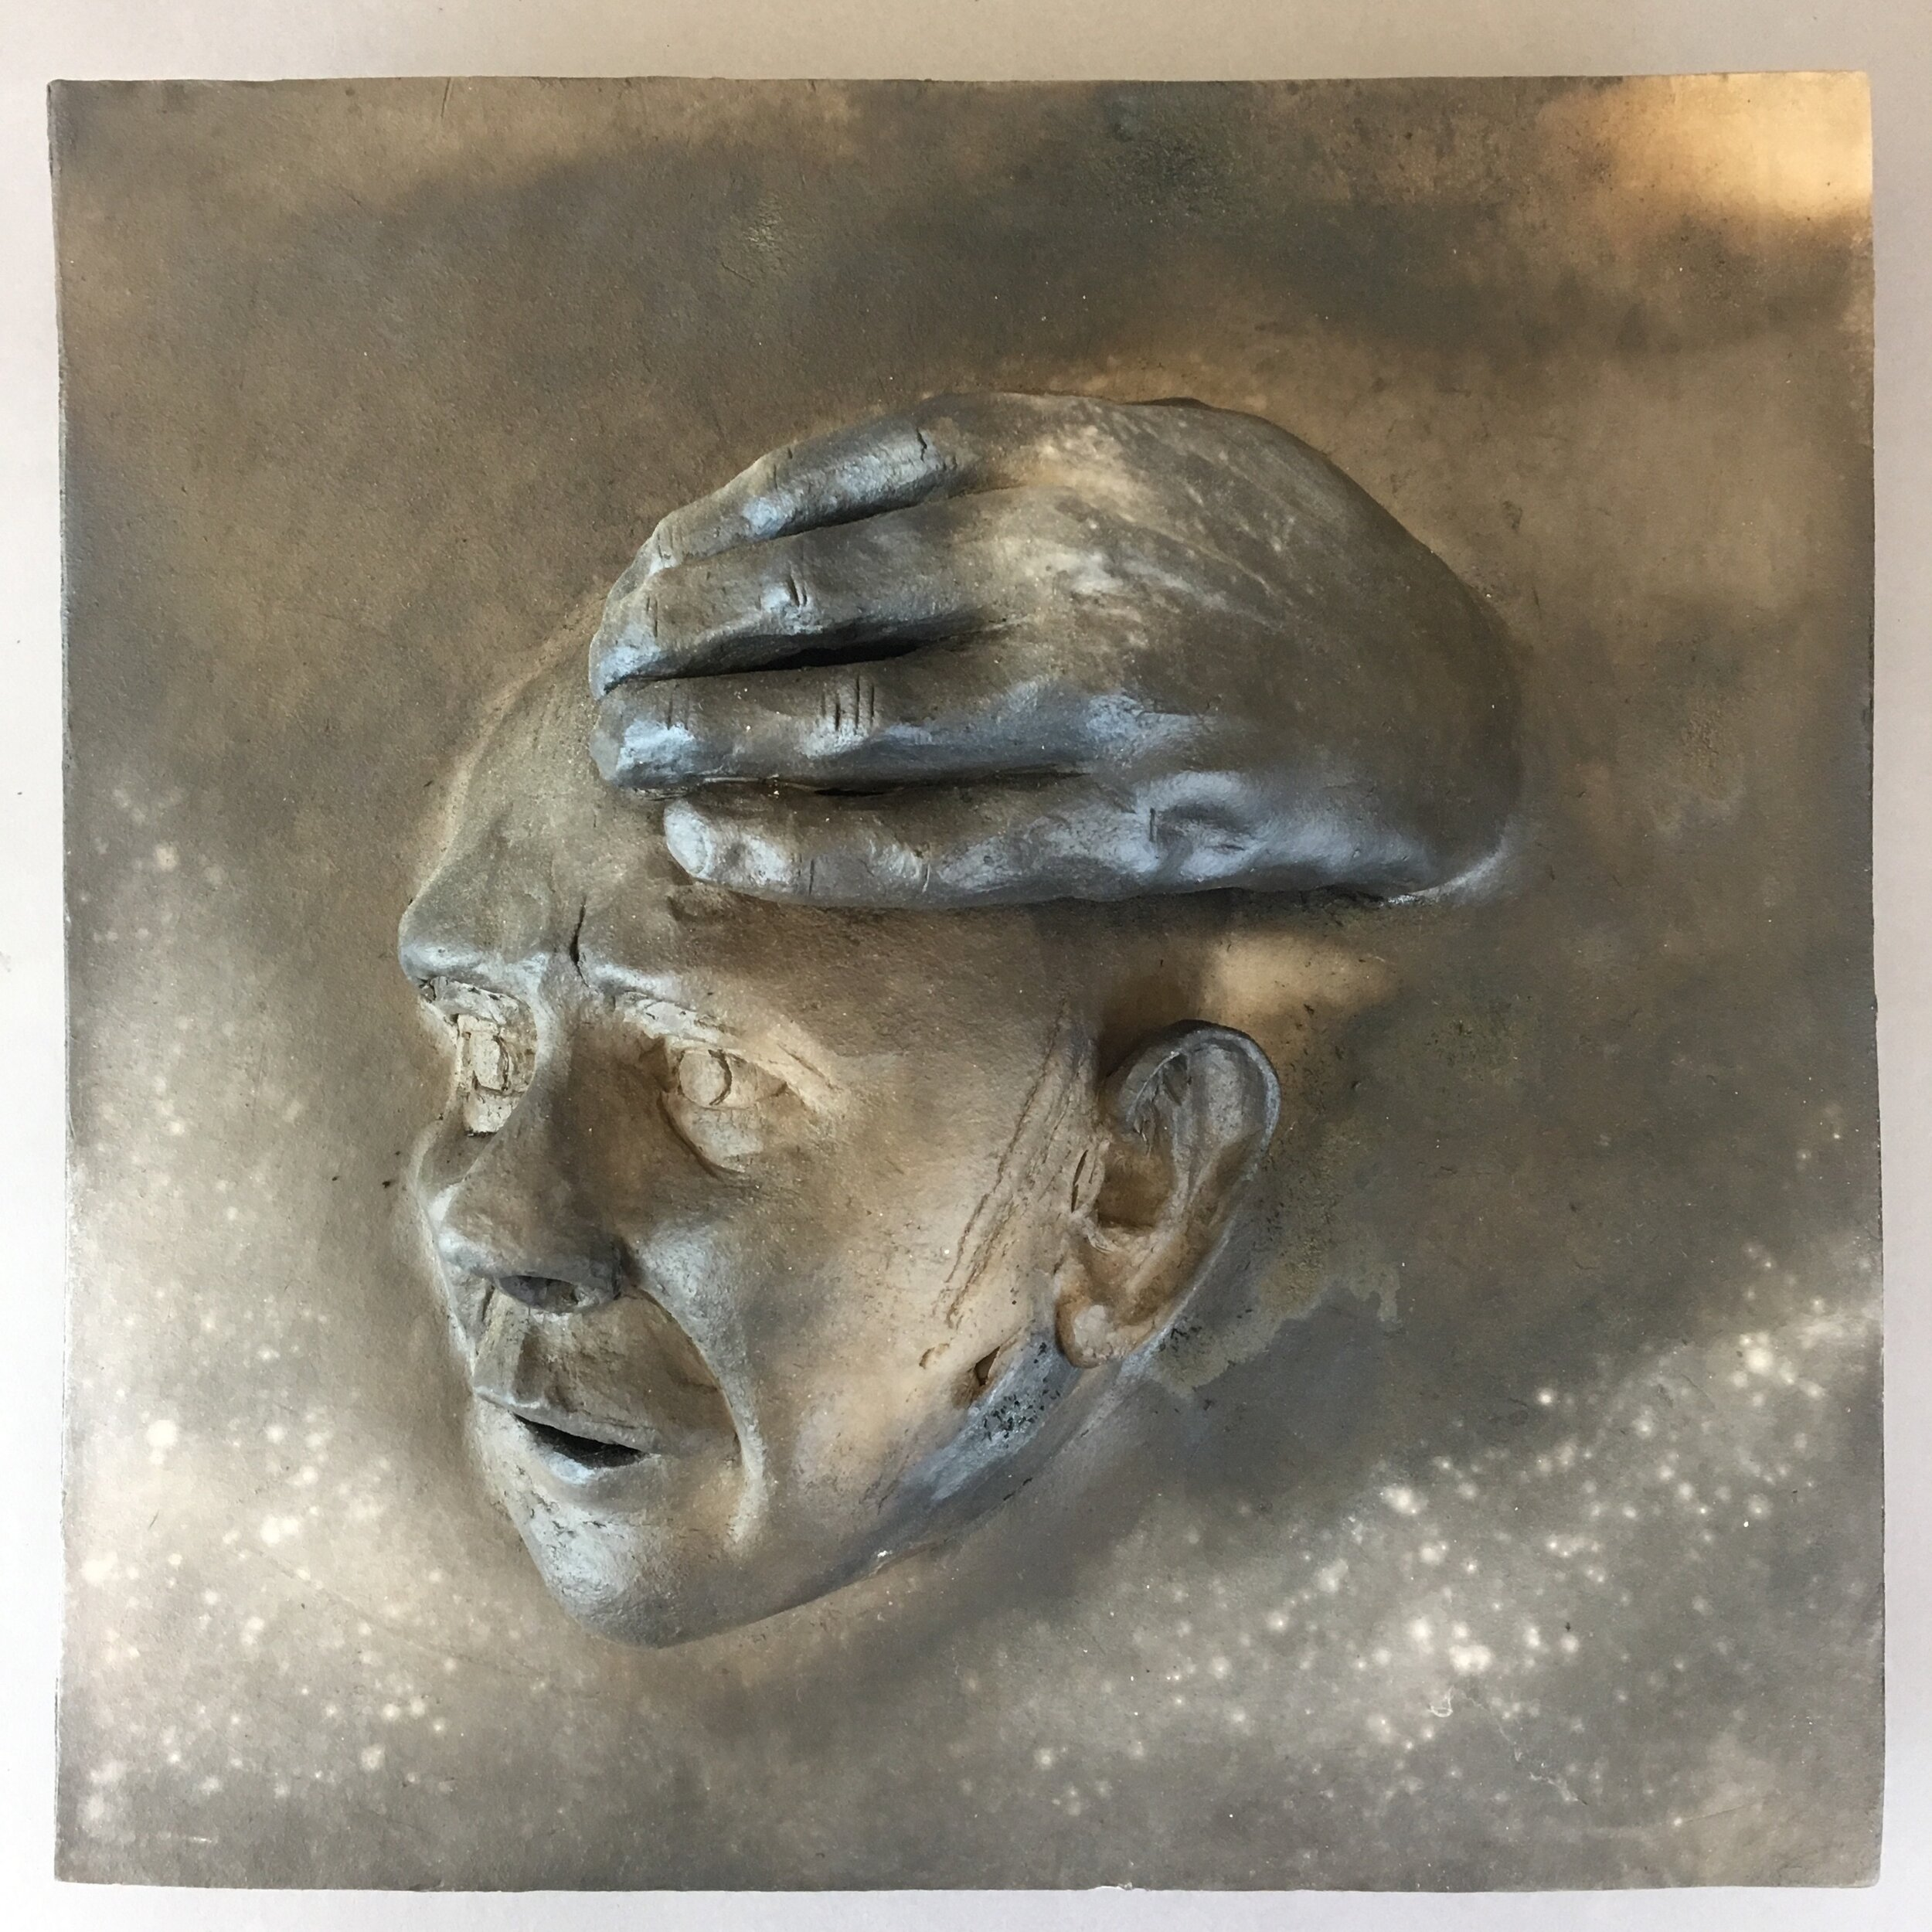 """Becoming  (panel 14 of 15)   Pit-fired ceramic on birch mounts  11.5"""" x 11.5"""" x variable thickness  Relief panels: $400 each  Flat panels: $75 each  Complete set: $4500  Click image to enlarge ⦿  Inquire"""